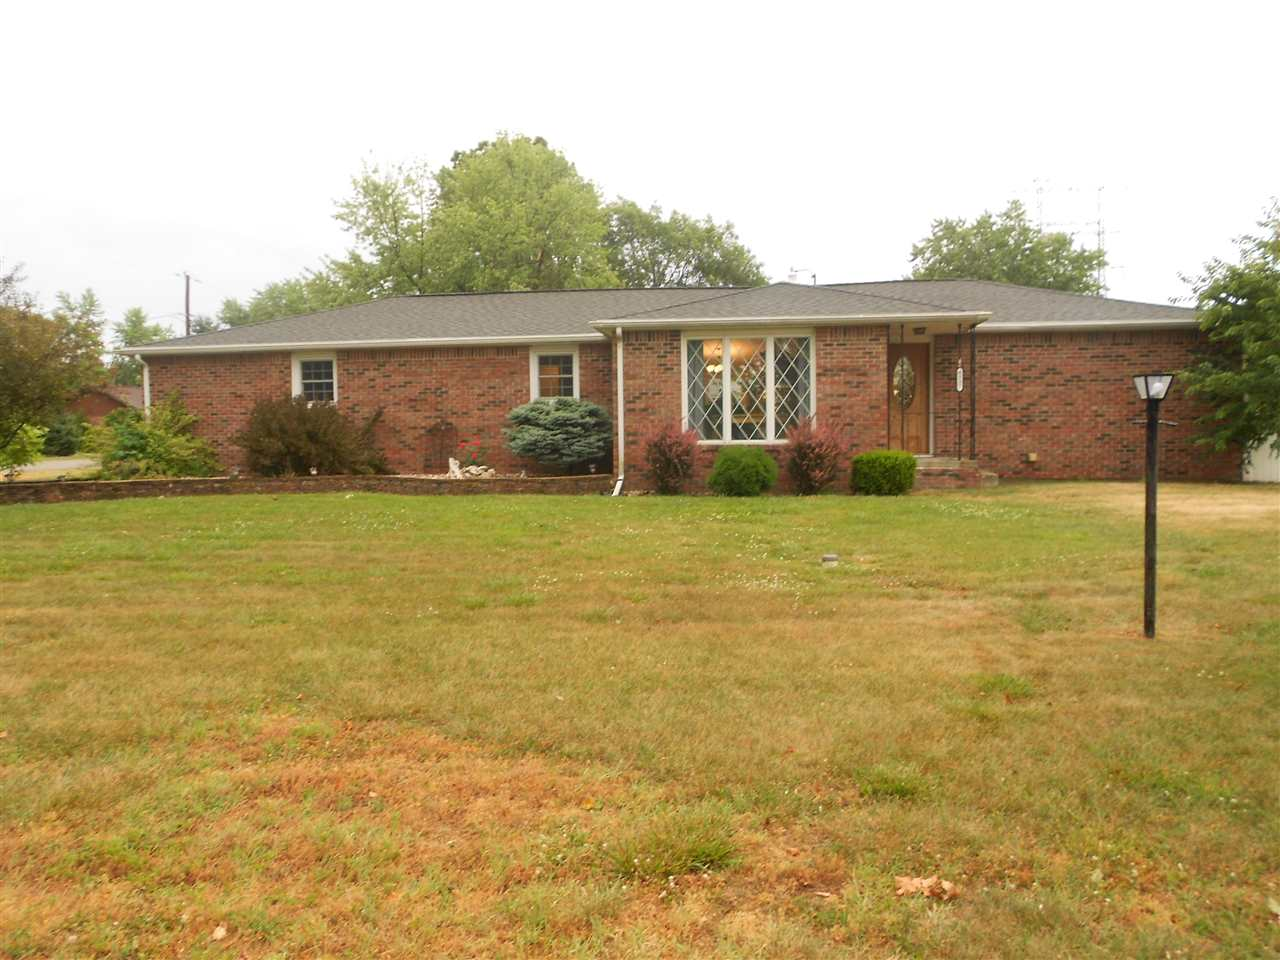 8537 N Castle, TERRE HAUTE, 47805, IN